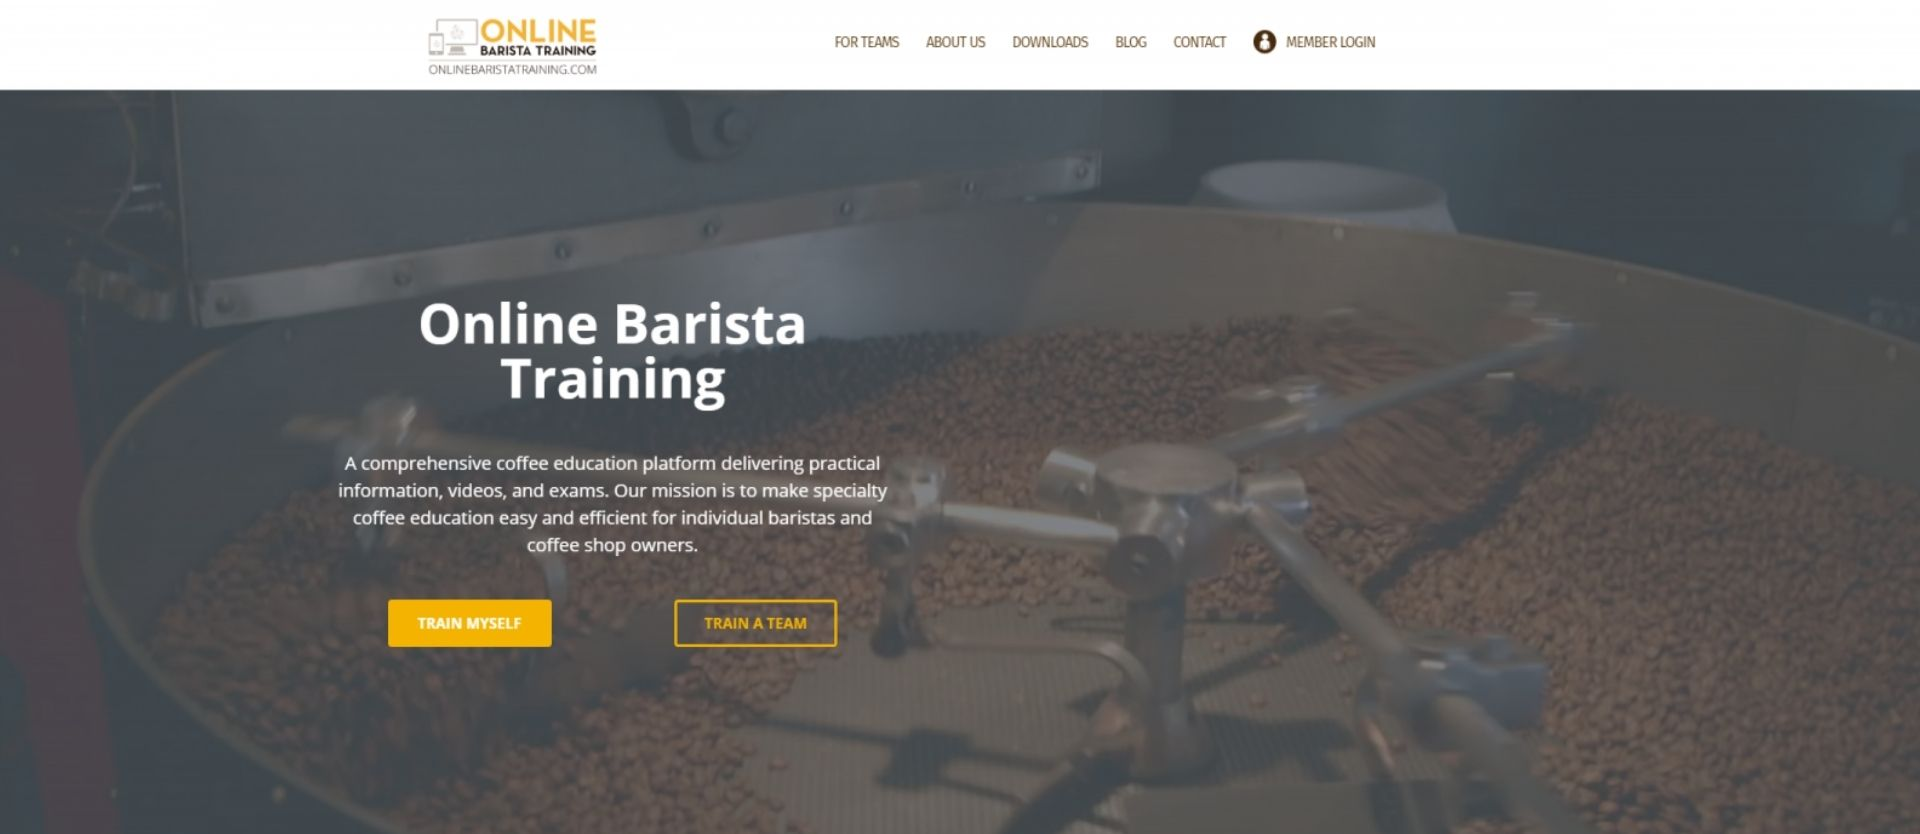 Online Barista Training site preview